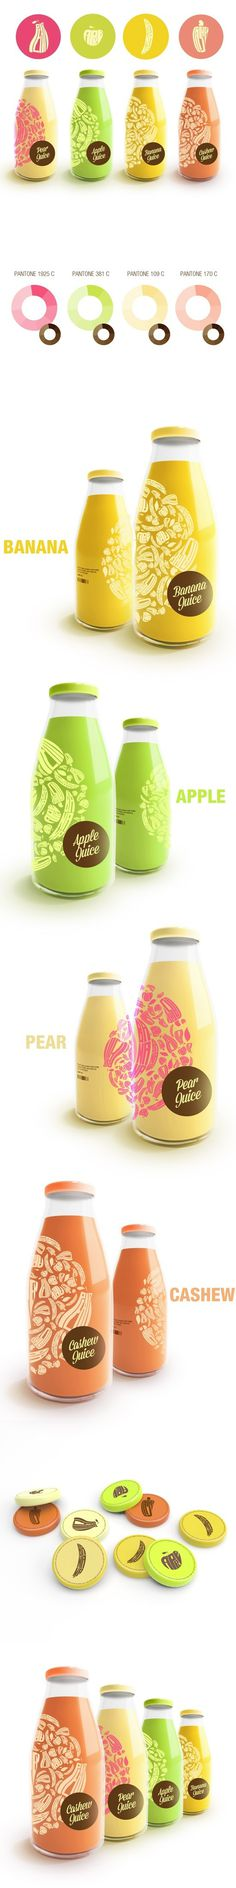 Packaging Project by Renan Vizzotto #packaging #design